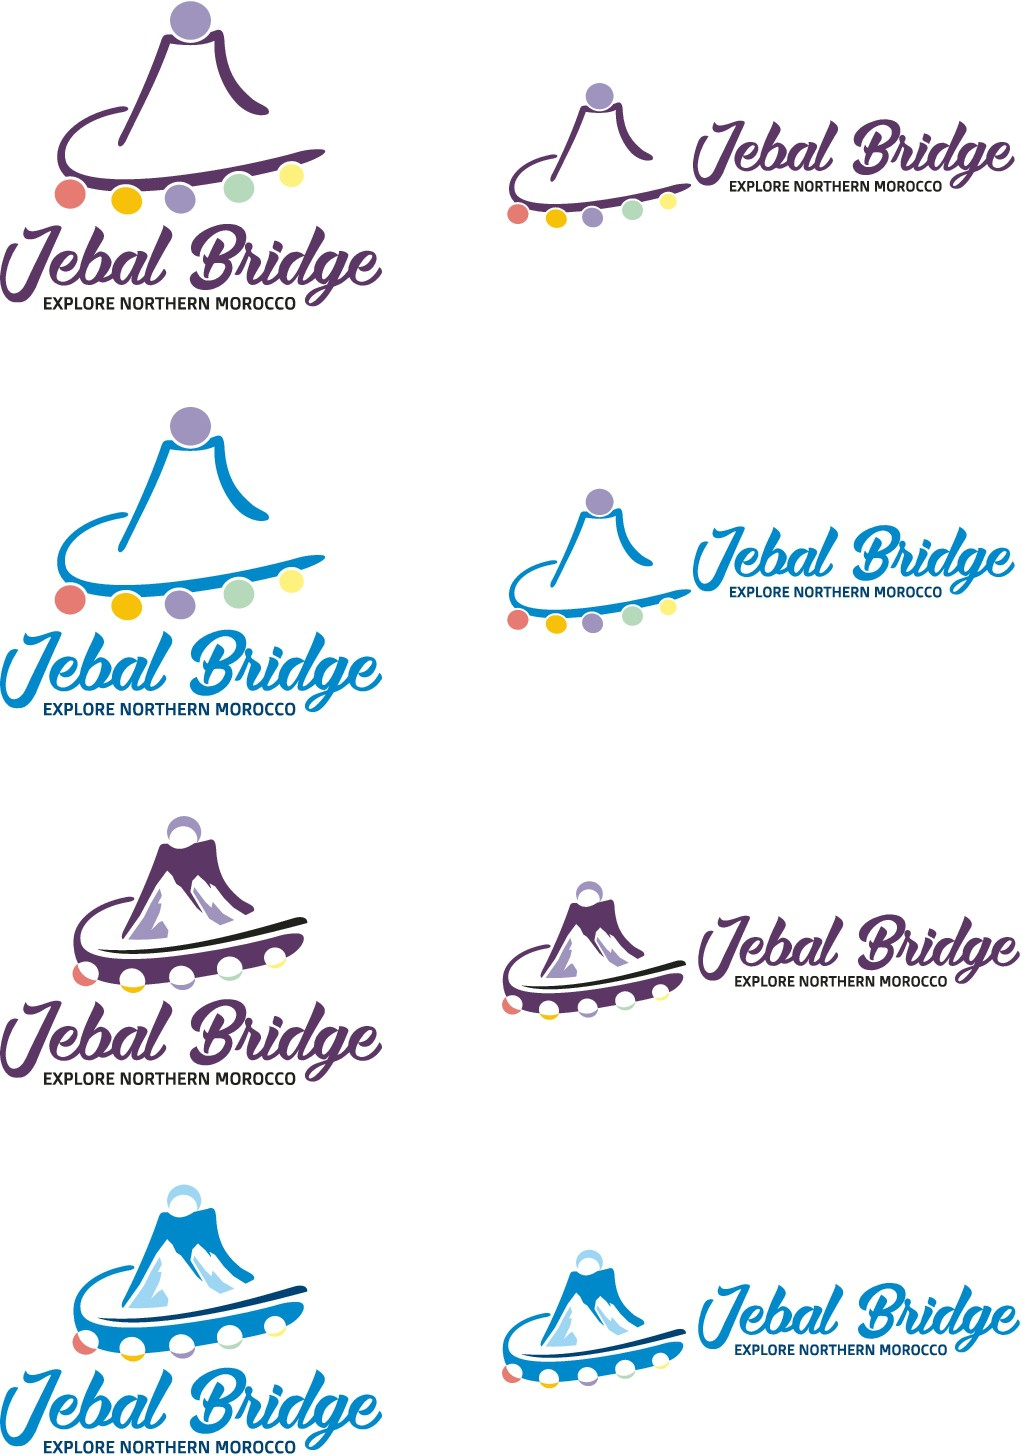 Create a logo for Jebal Bridge that will bring tourists to Northern Morocco